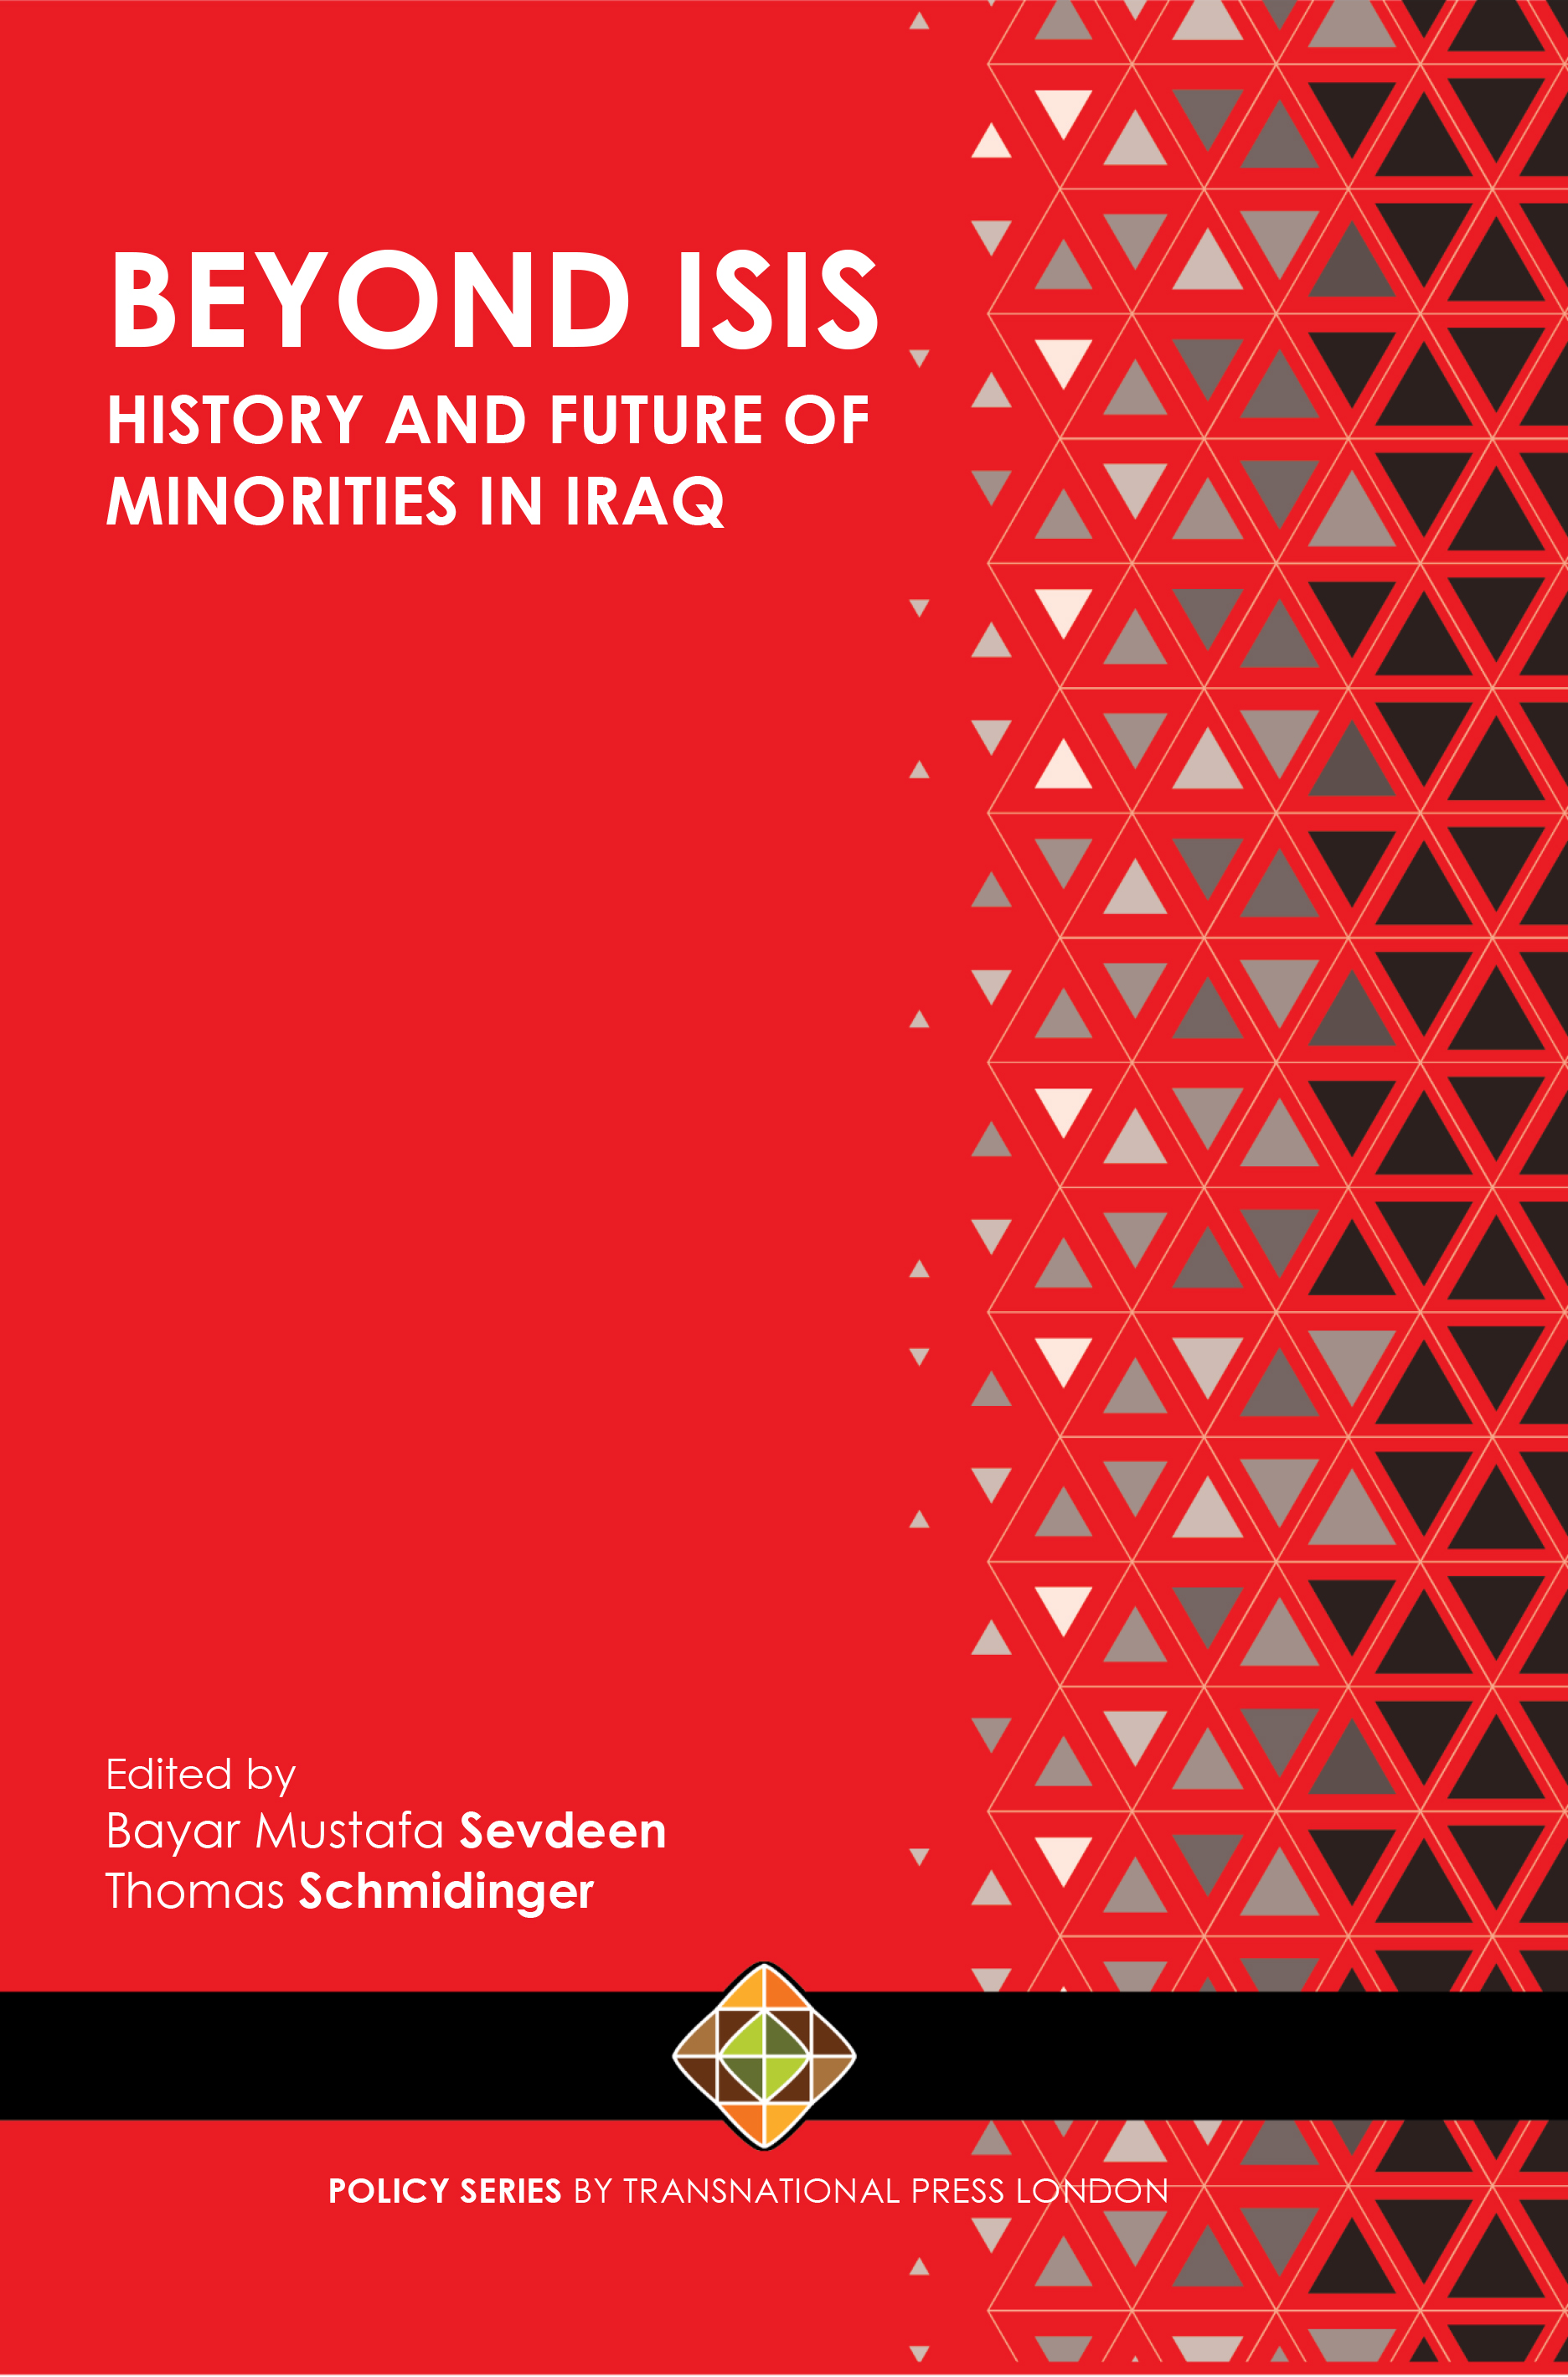 Beyond ISIS: History and Future of Religious Minorities in Iraq